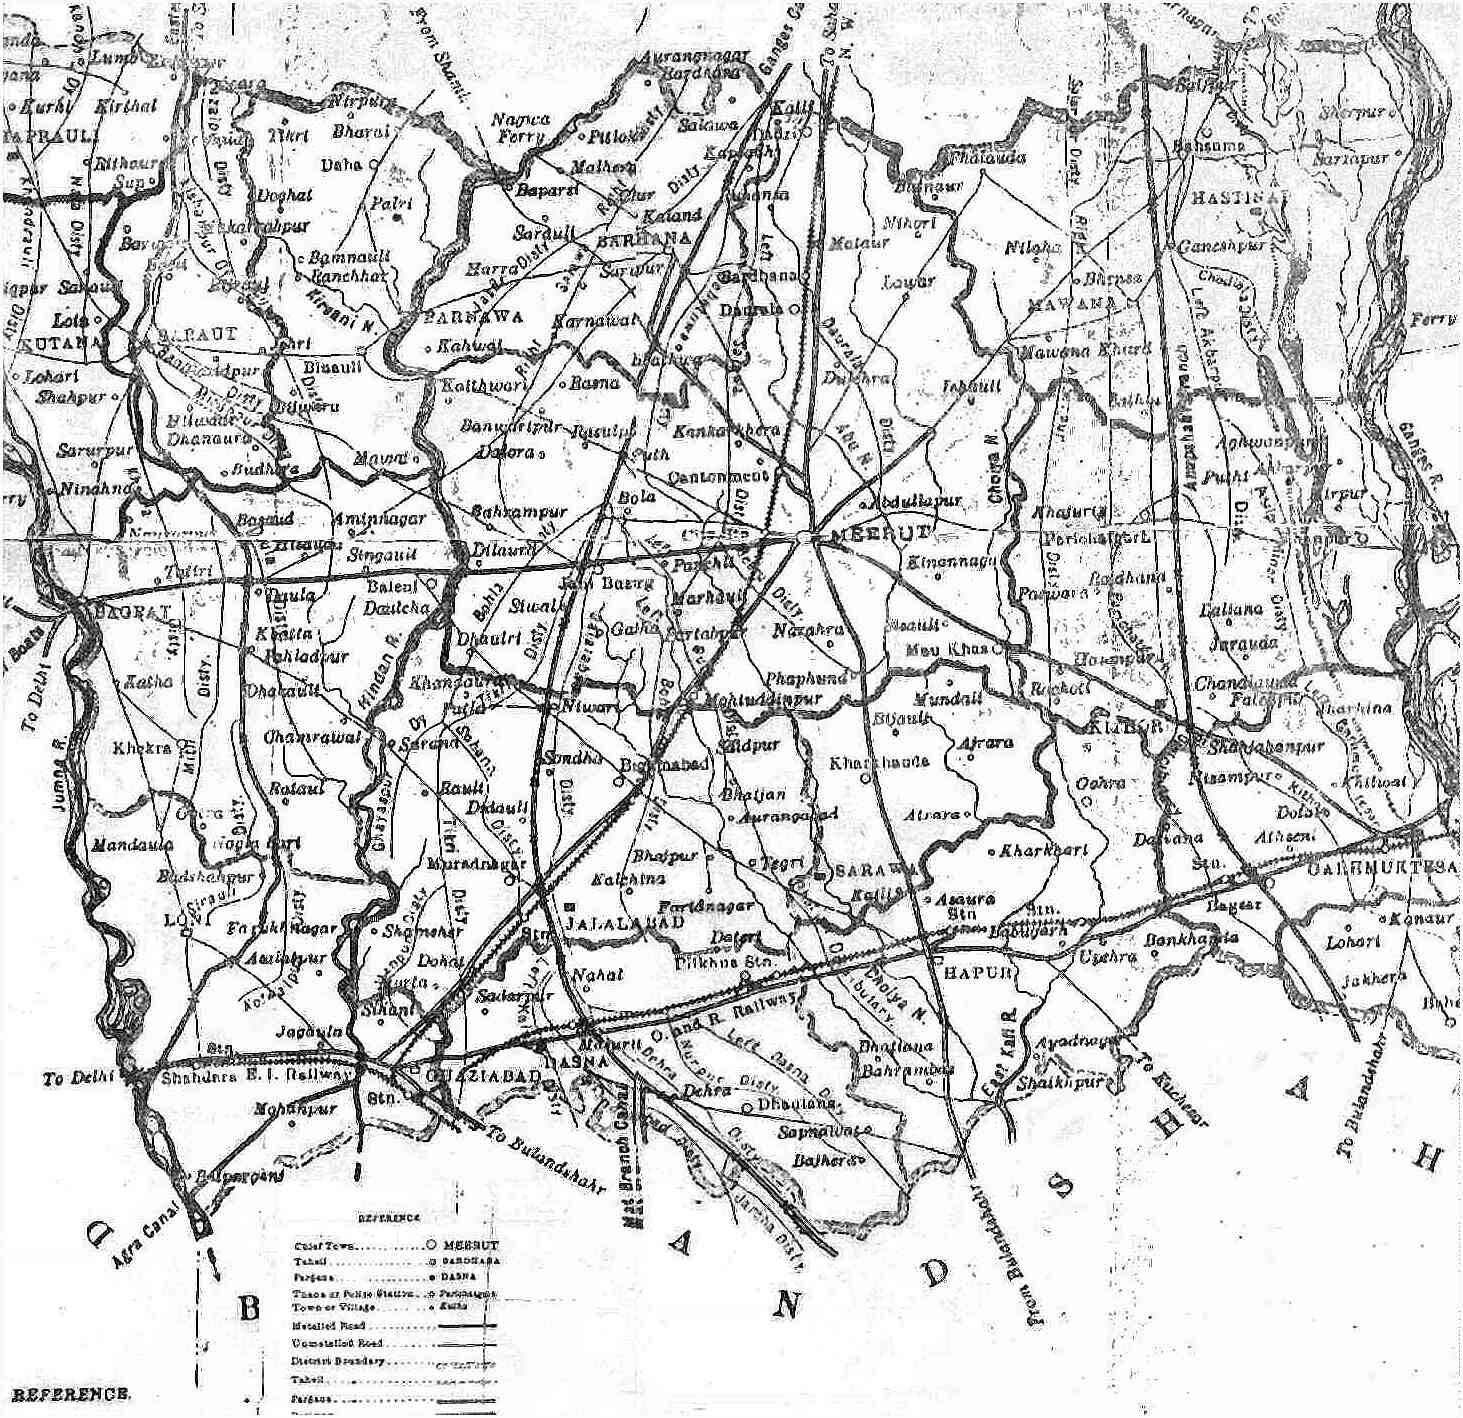 Meerut India Map.Meerut Pictures And Text About A Town In North India